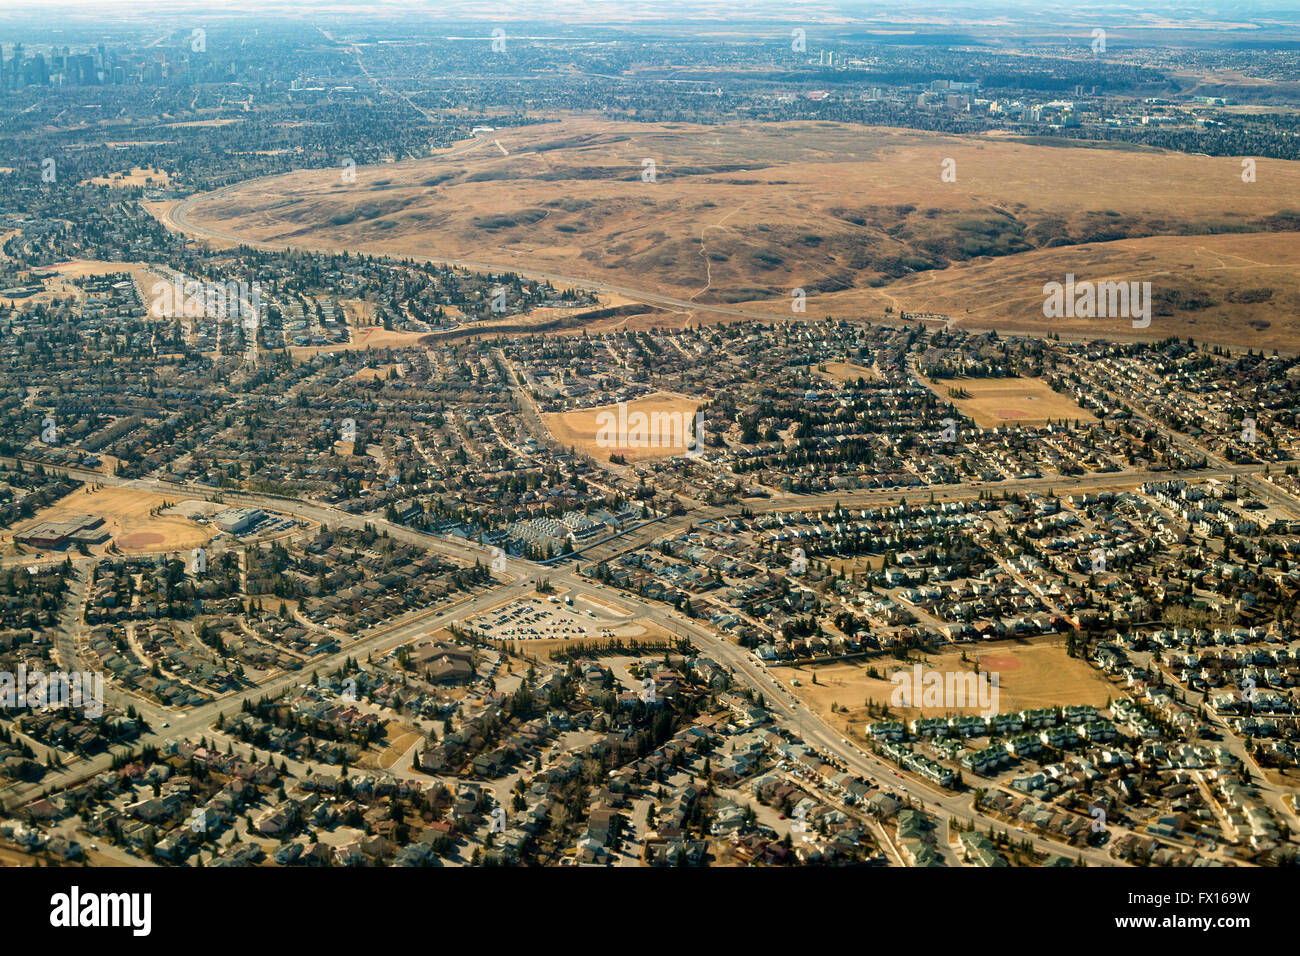 Nose Hill park with rough fescue grassland ecosystem surrounded by residential communities, aerial view. - Stock Image